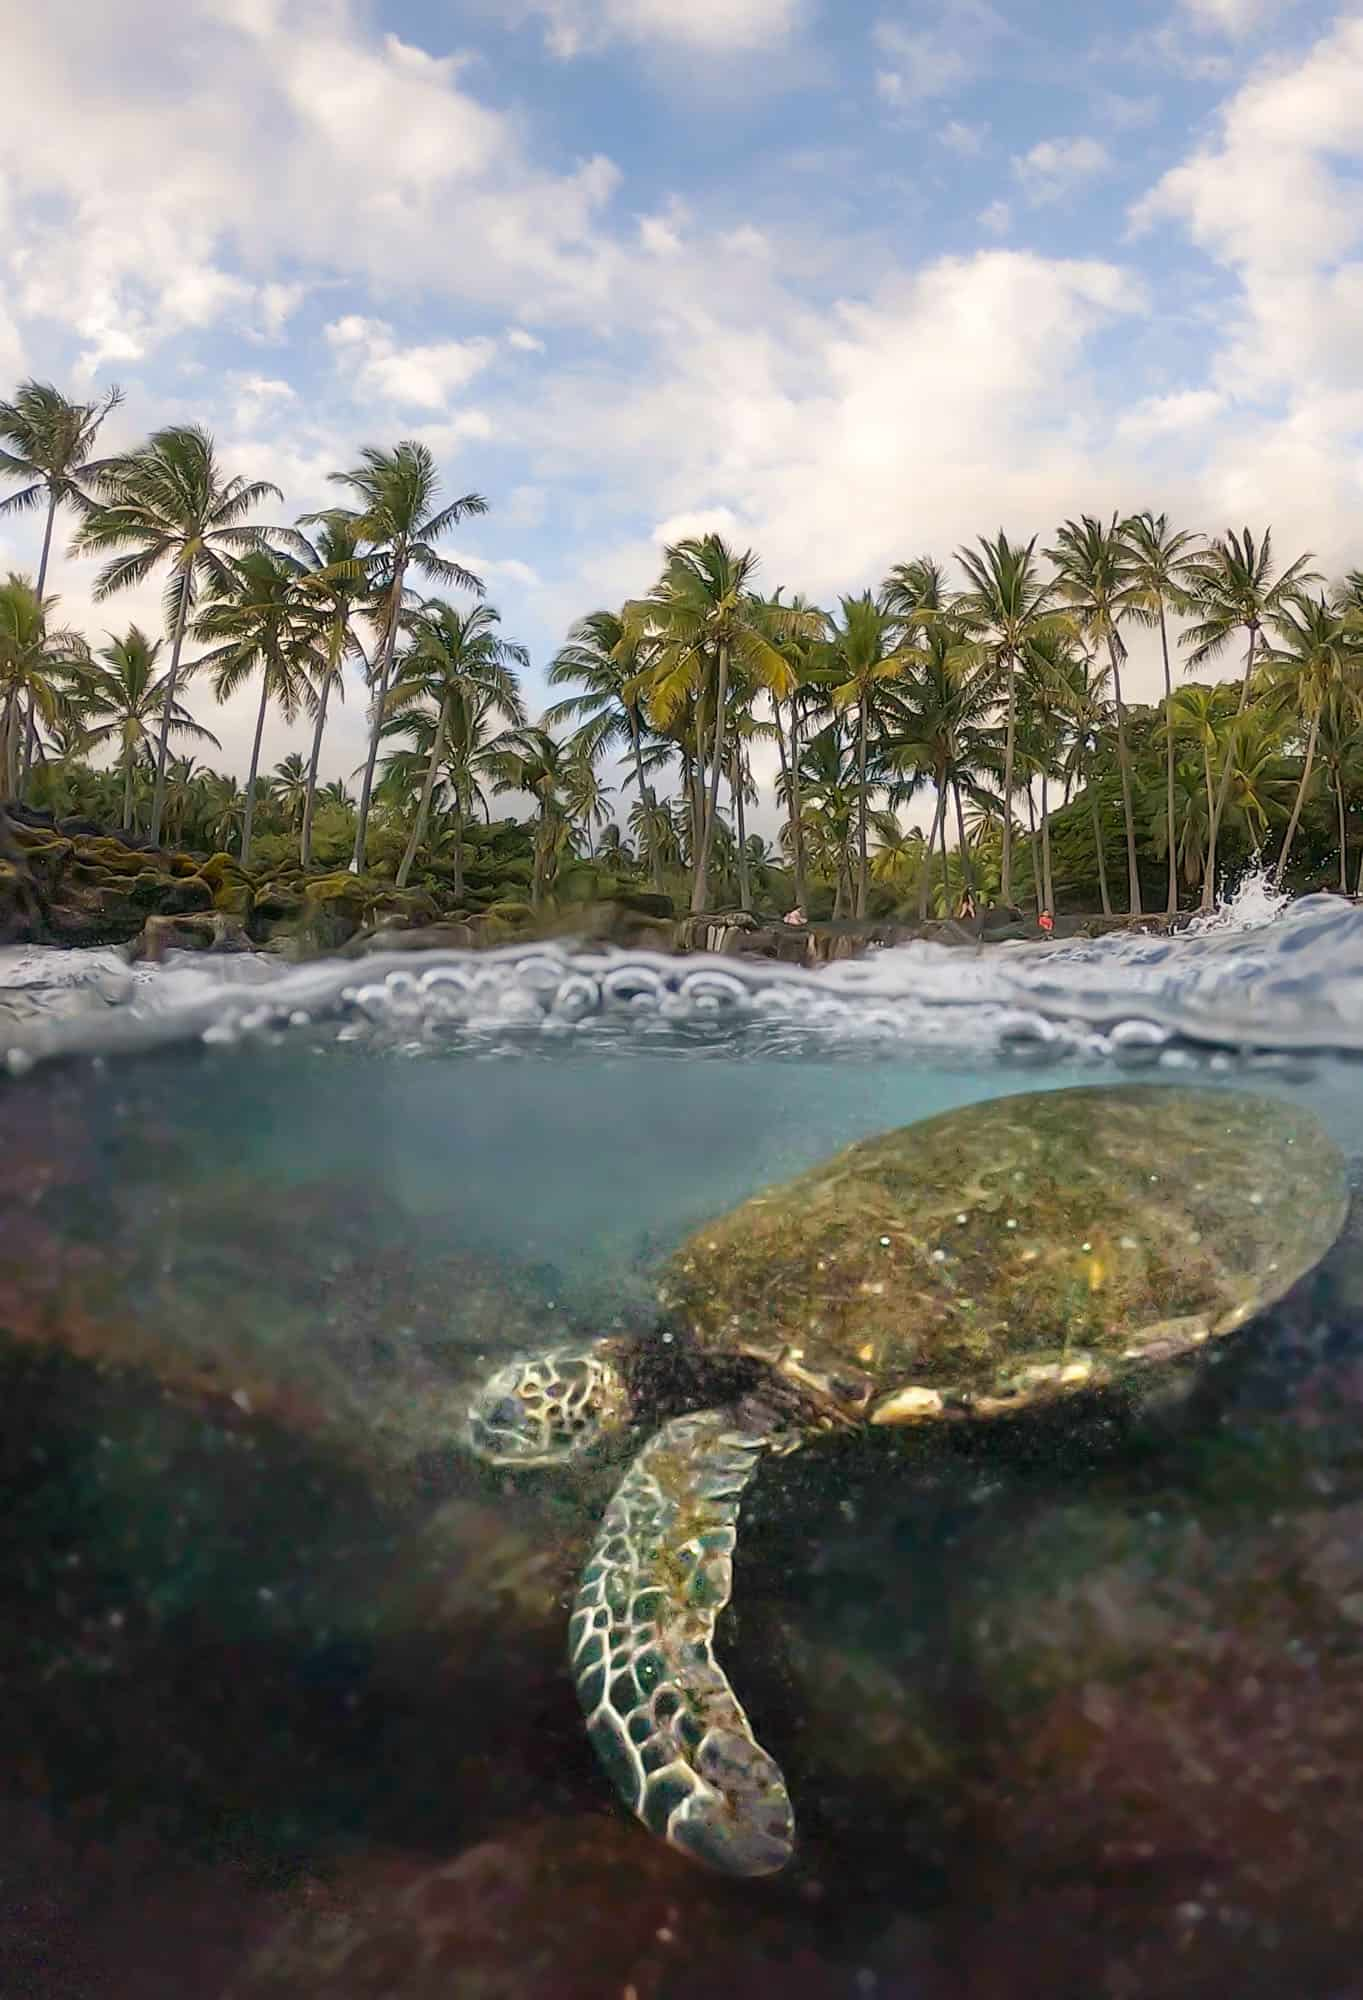 A green sea turtle swims along the black sand beach of Big Island.